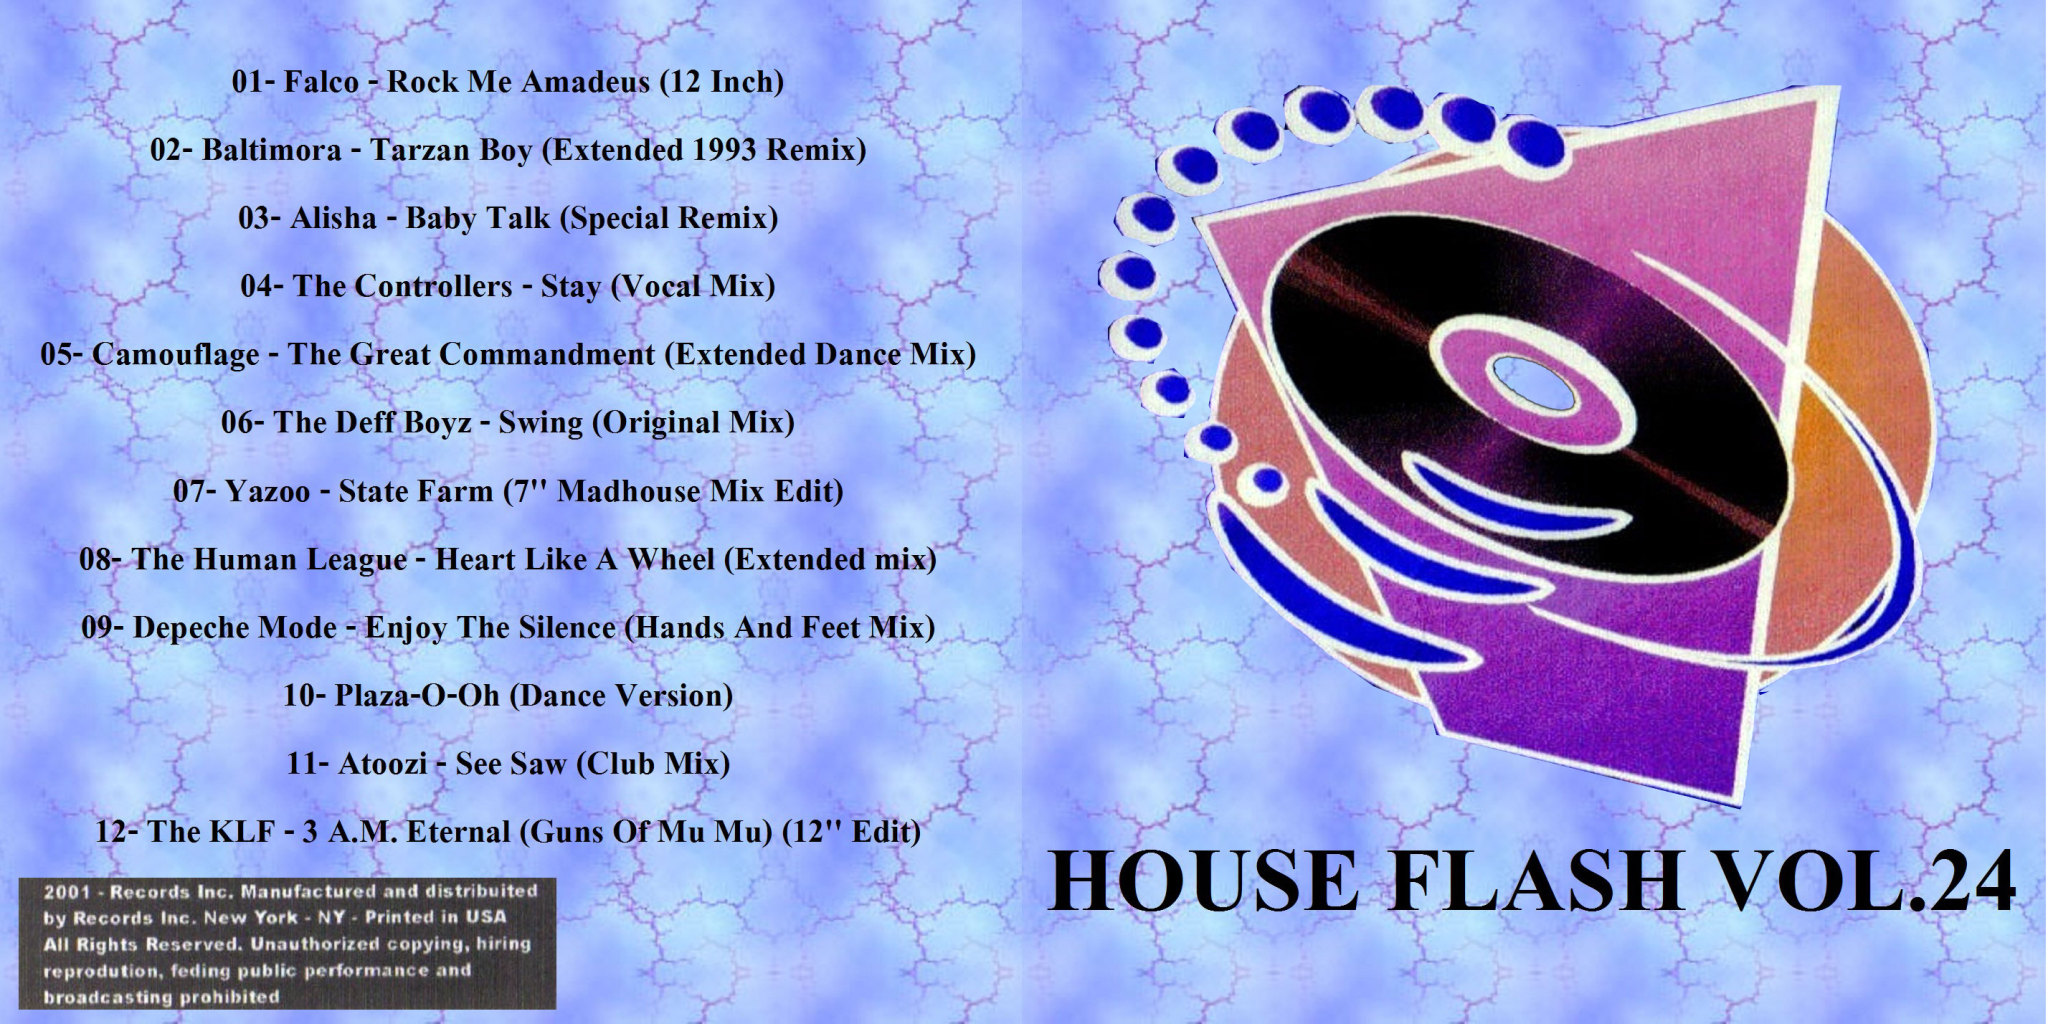 23/06/2016 - COLEÇÃO HOUSE FLASH DO VOL 01 AO 64 2r5vtsk